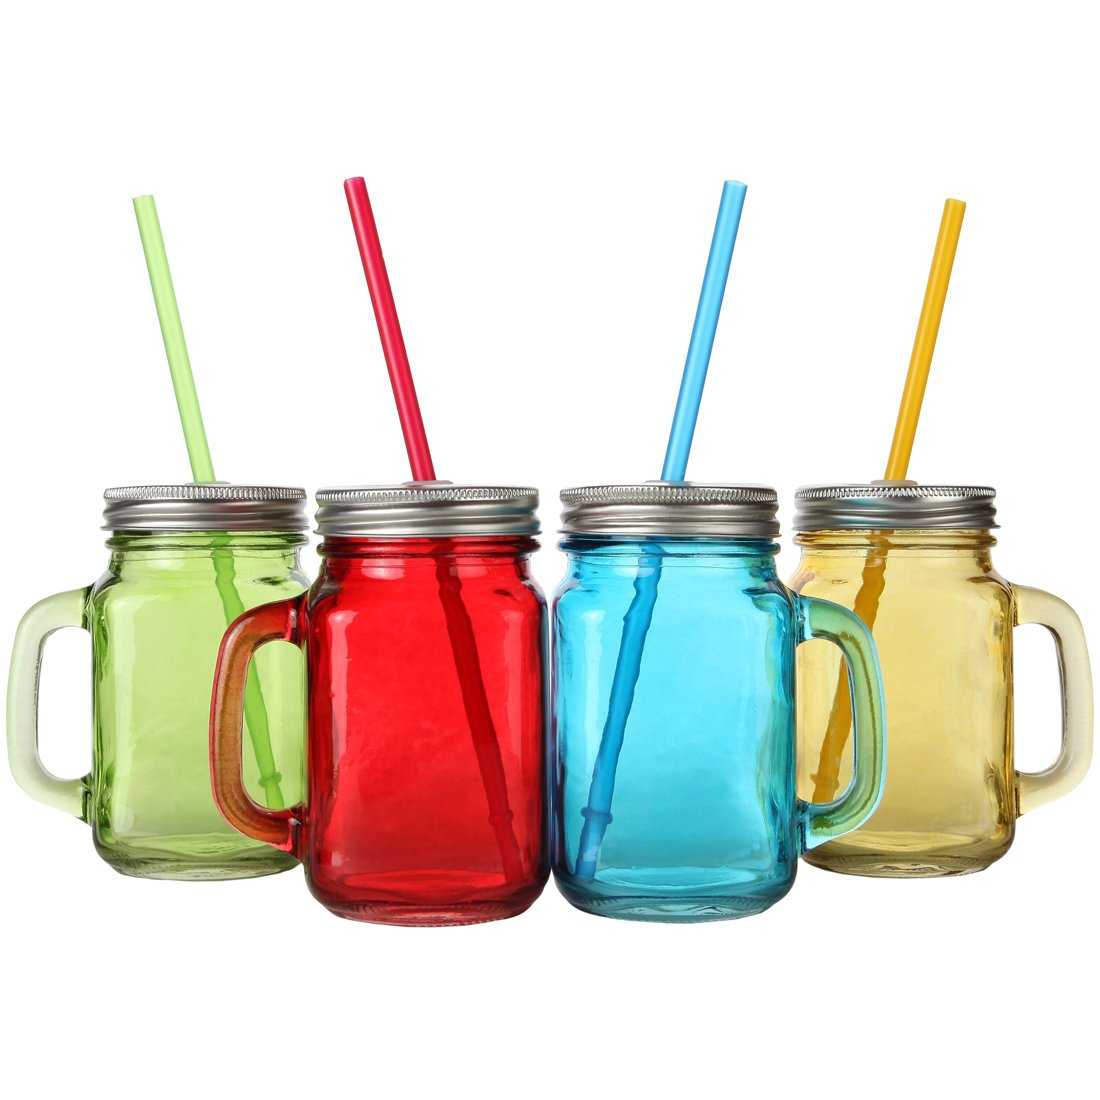 Lily's Home Old Fashioned Mason Jar Mugs with Handles, Tin Lids and Matching Reusable Plastic Straws, Assorted Solid Colors (16 oz. Each, Set of 4)